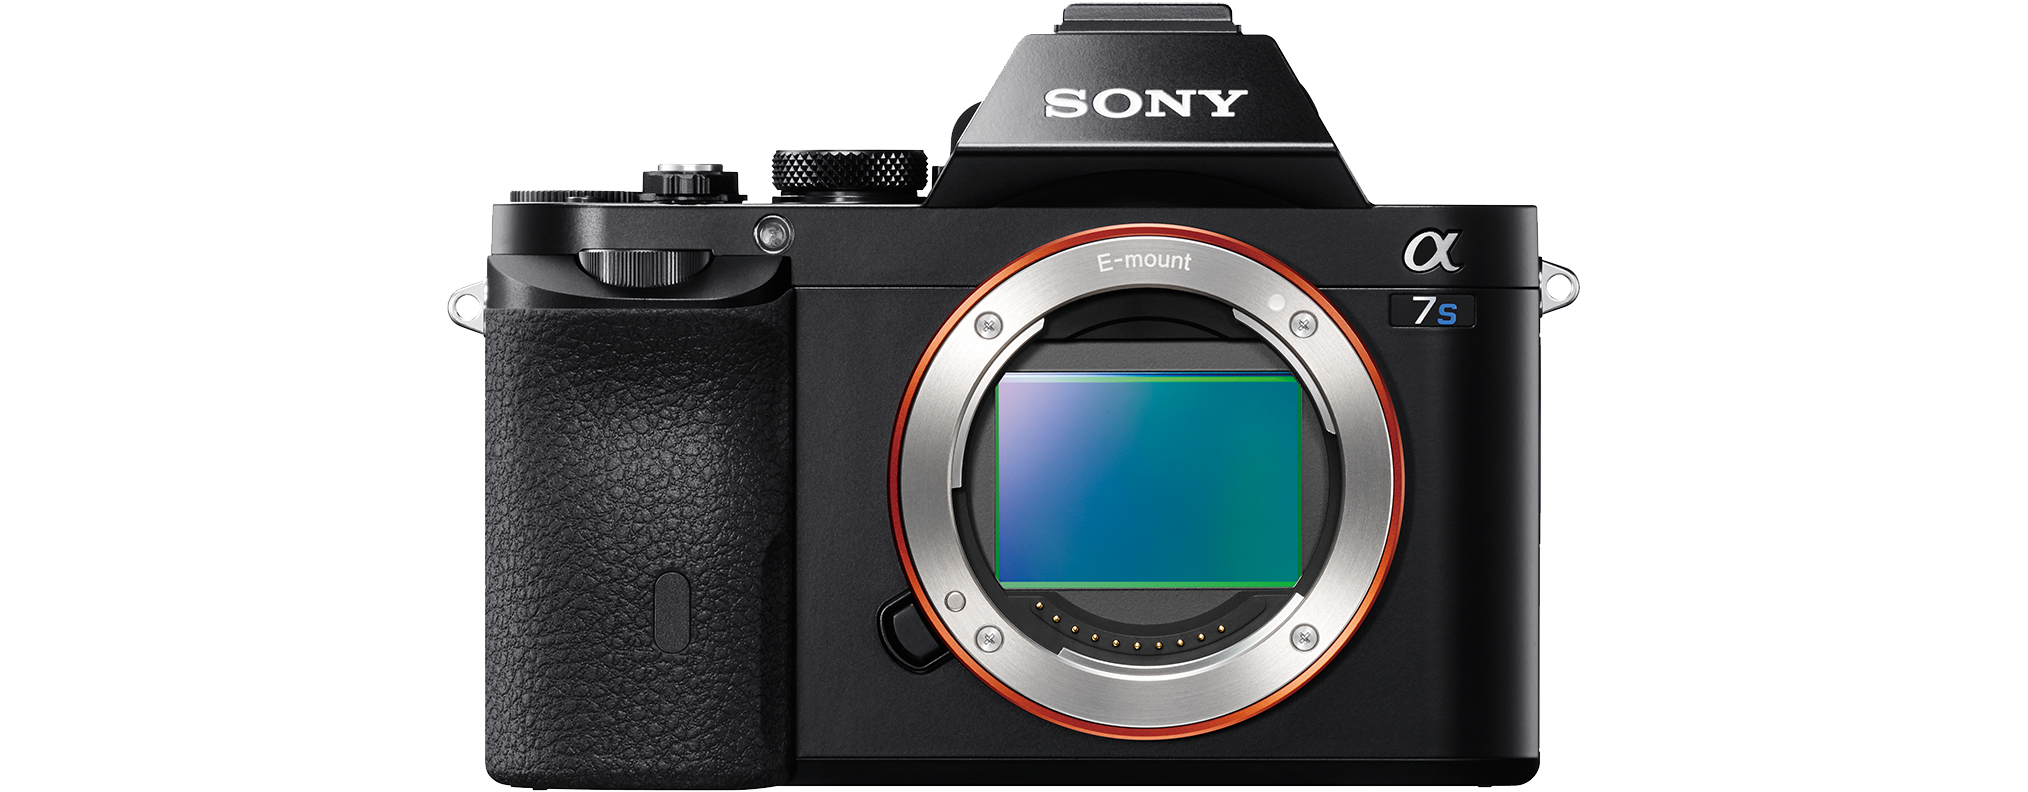 Sony Alpha a7S Full Frame Mirrorless Camera Black by Sony